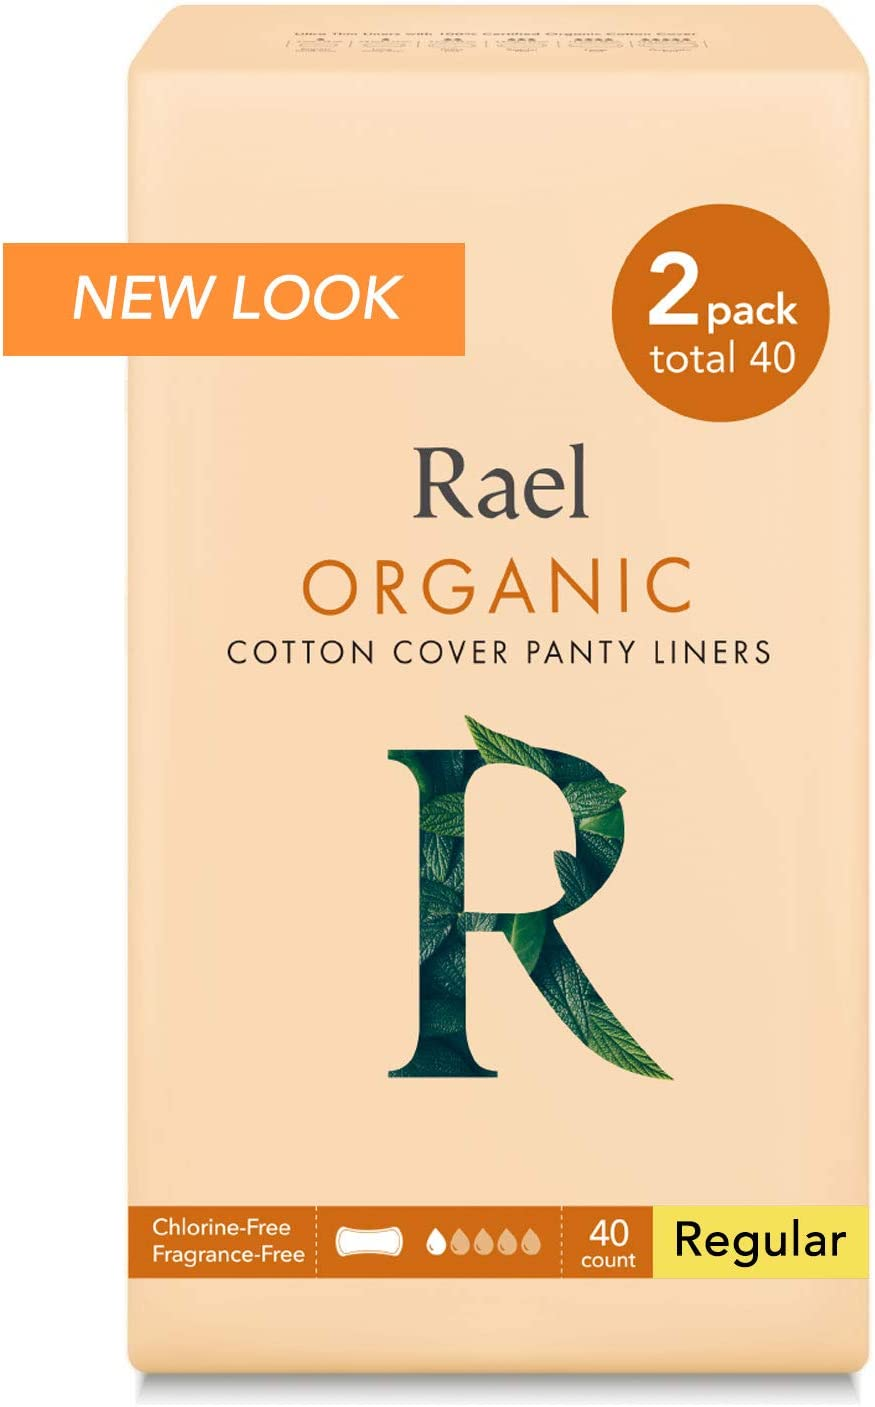 Rael Certified Organic Cotton Panty Liners, Regular - 2Pack/40 total - Unscented Pantiliners - Natural Daily Pantyliners (2 Pack) ,6 Inch